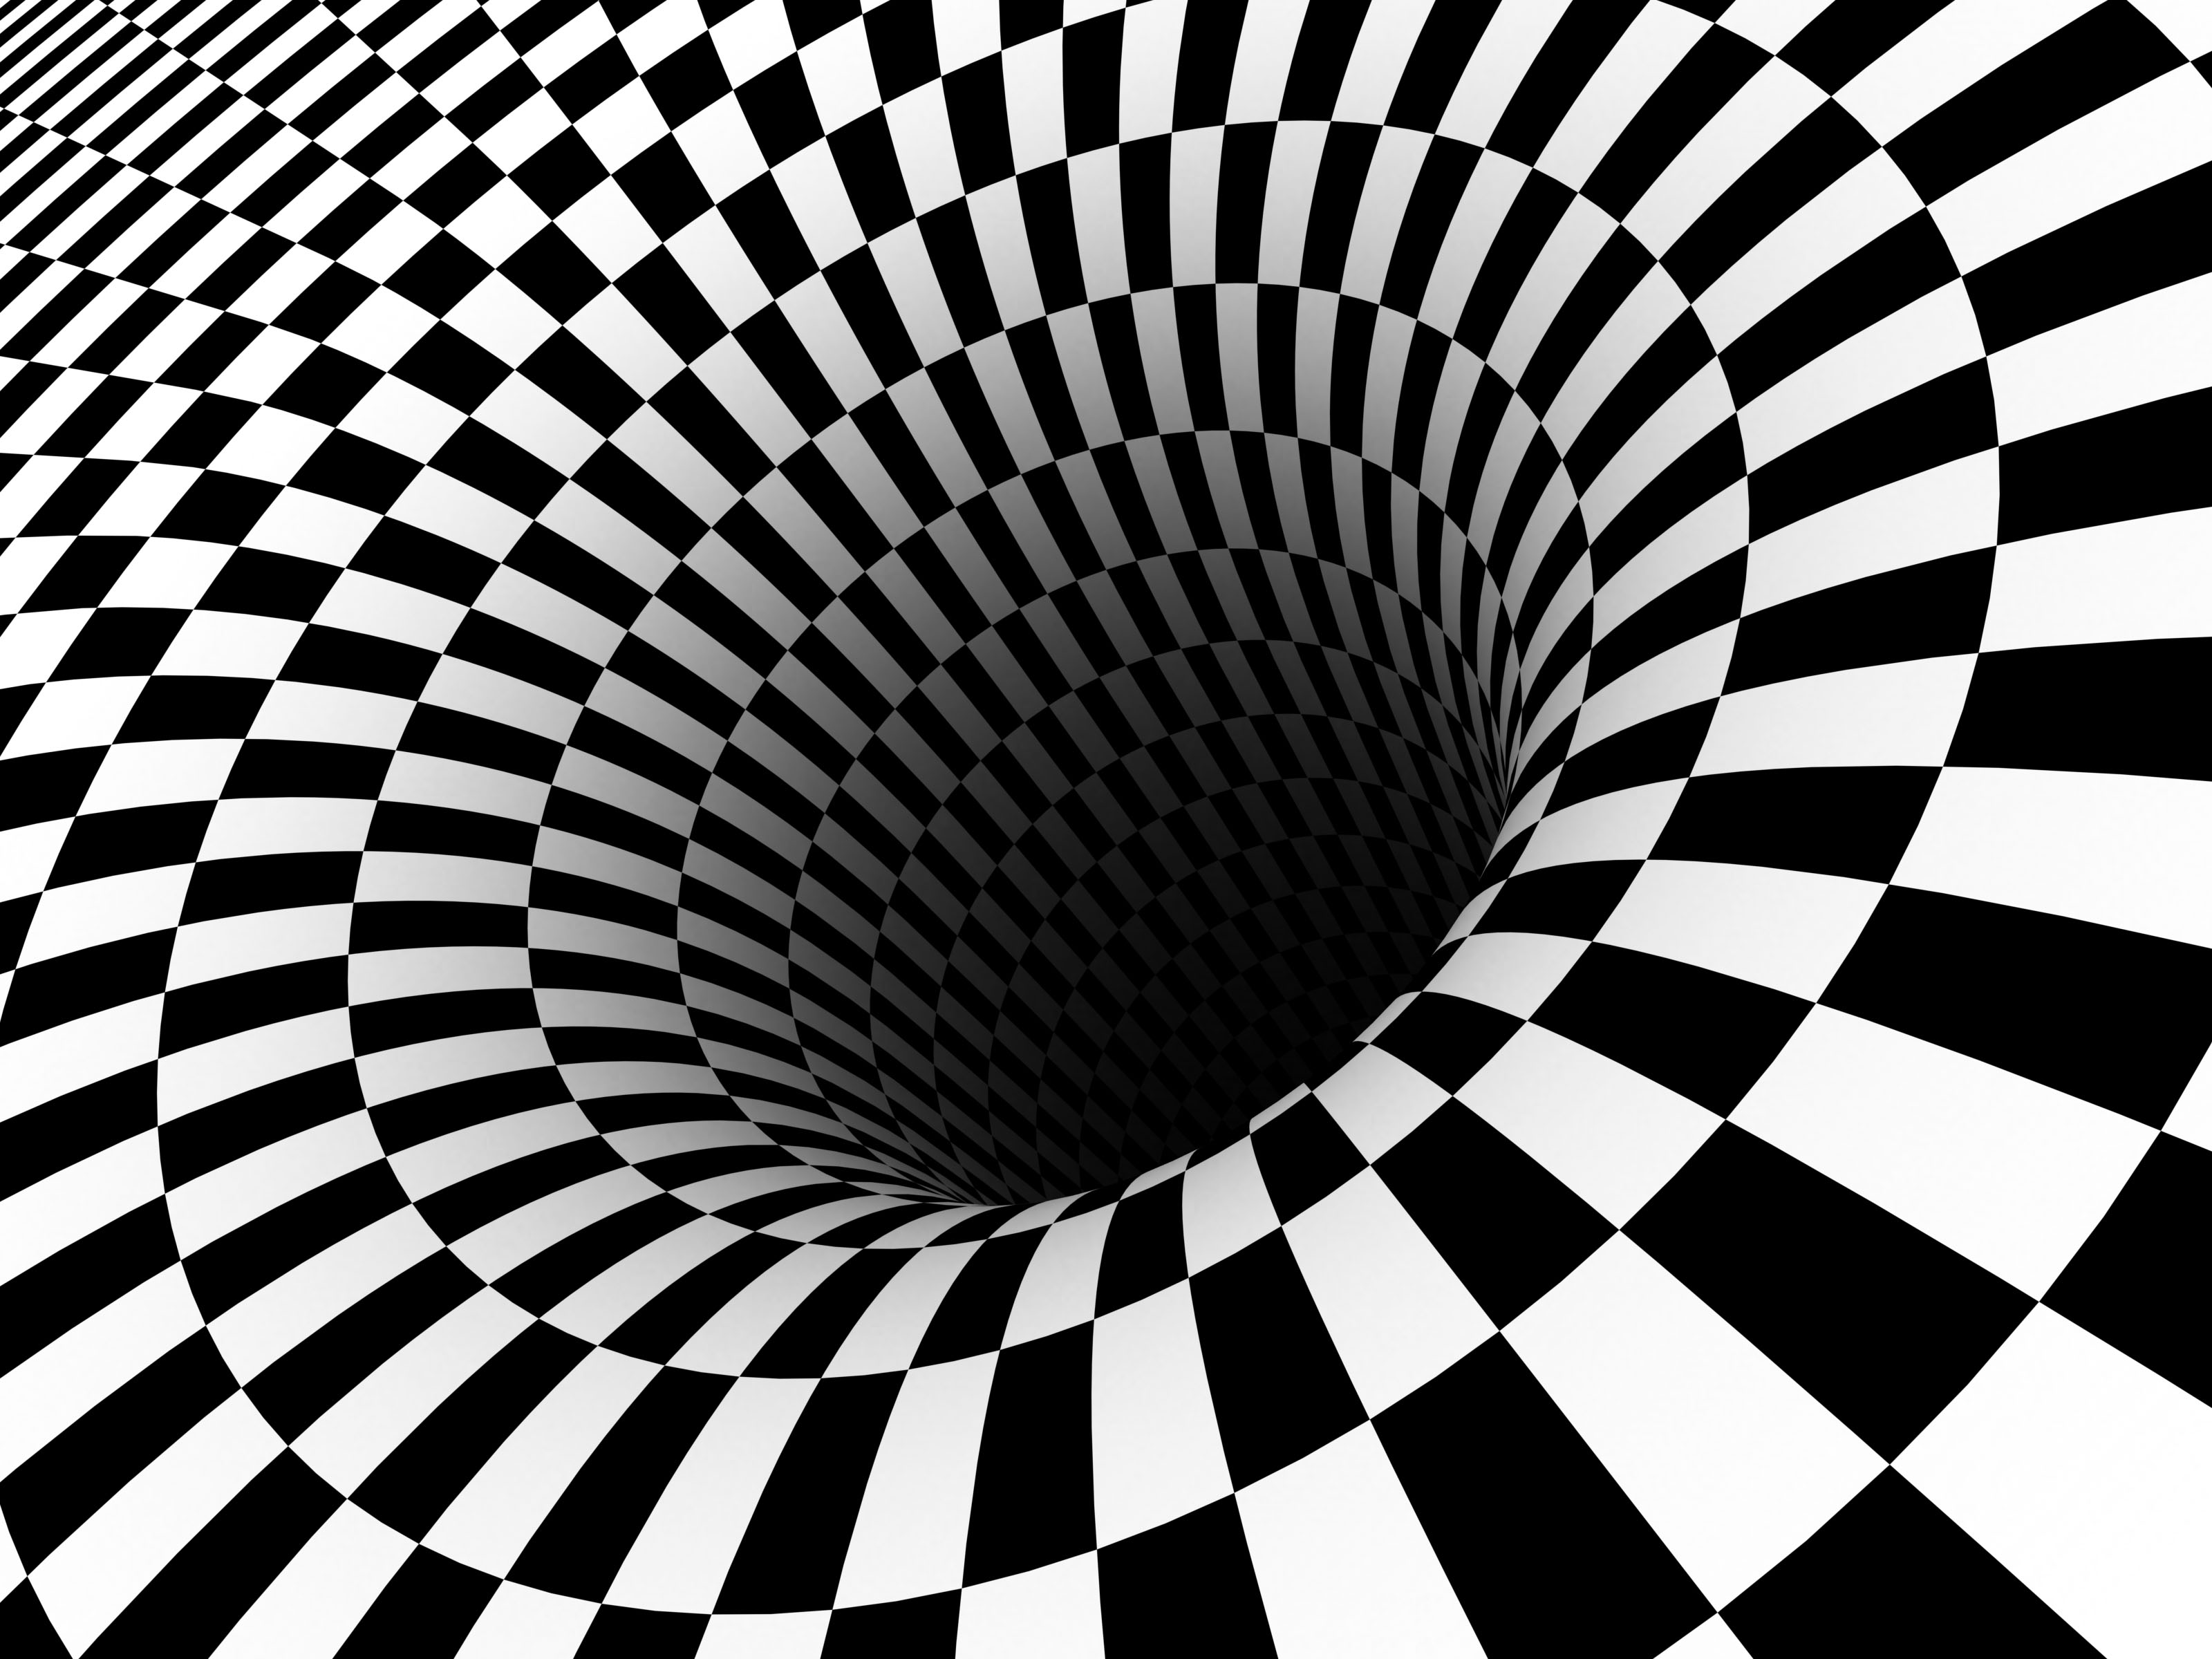 3200x2400 Hands Drawings Optical Illusion Wallpaper 1920x1080 301968